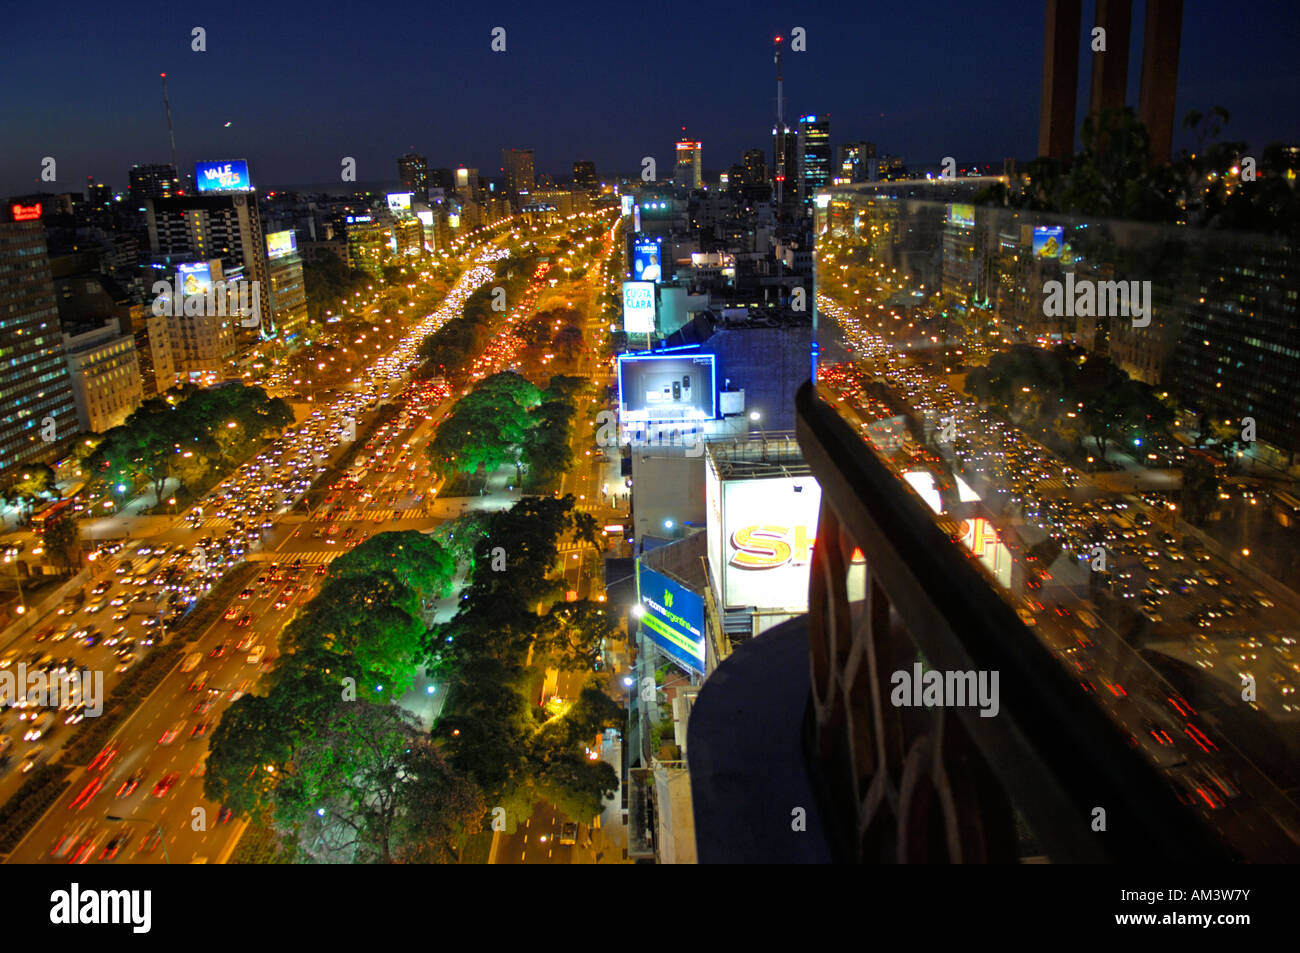 The Avenida 9th July in Buenos Aires - Stock Image